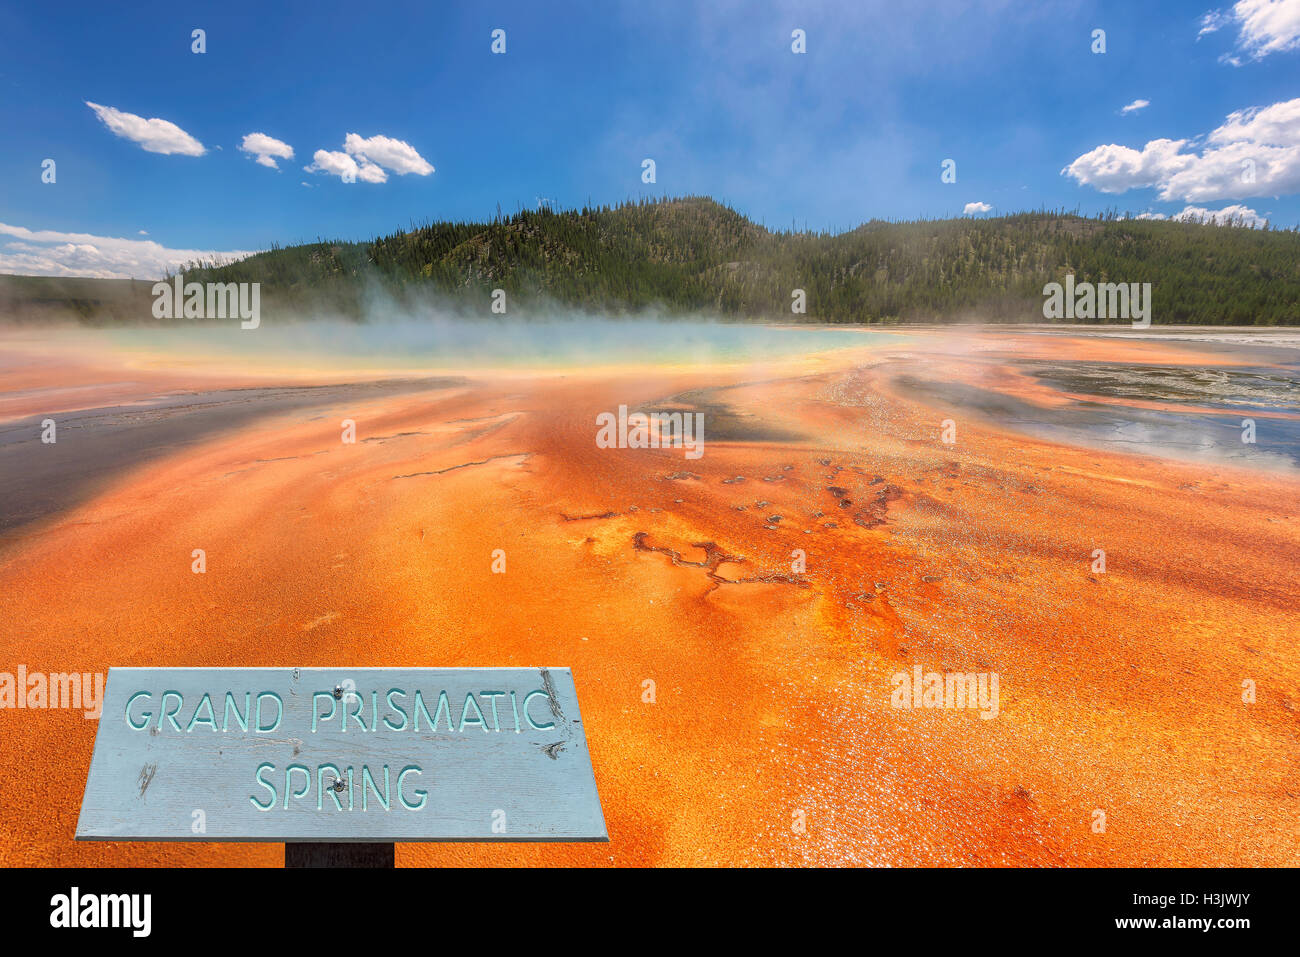 View of the Grand Prismatic Spring in Yellowstone National Park - Stock Image